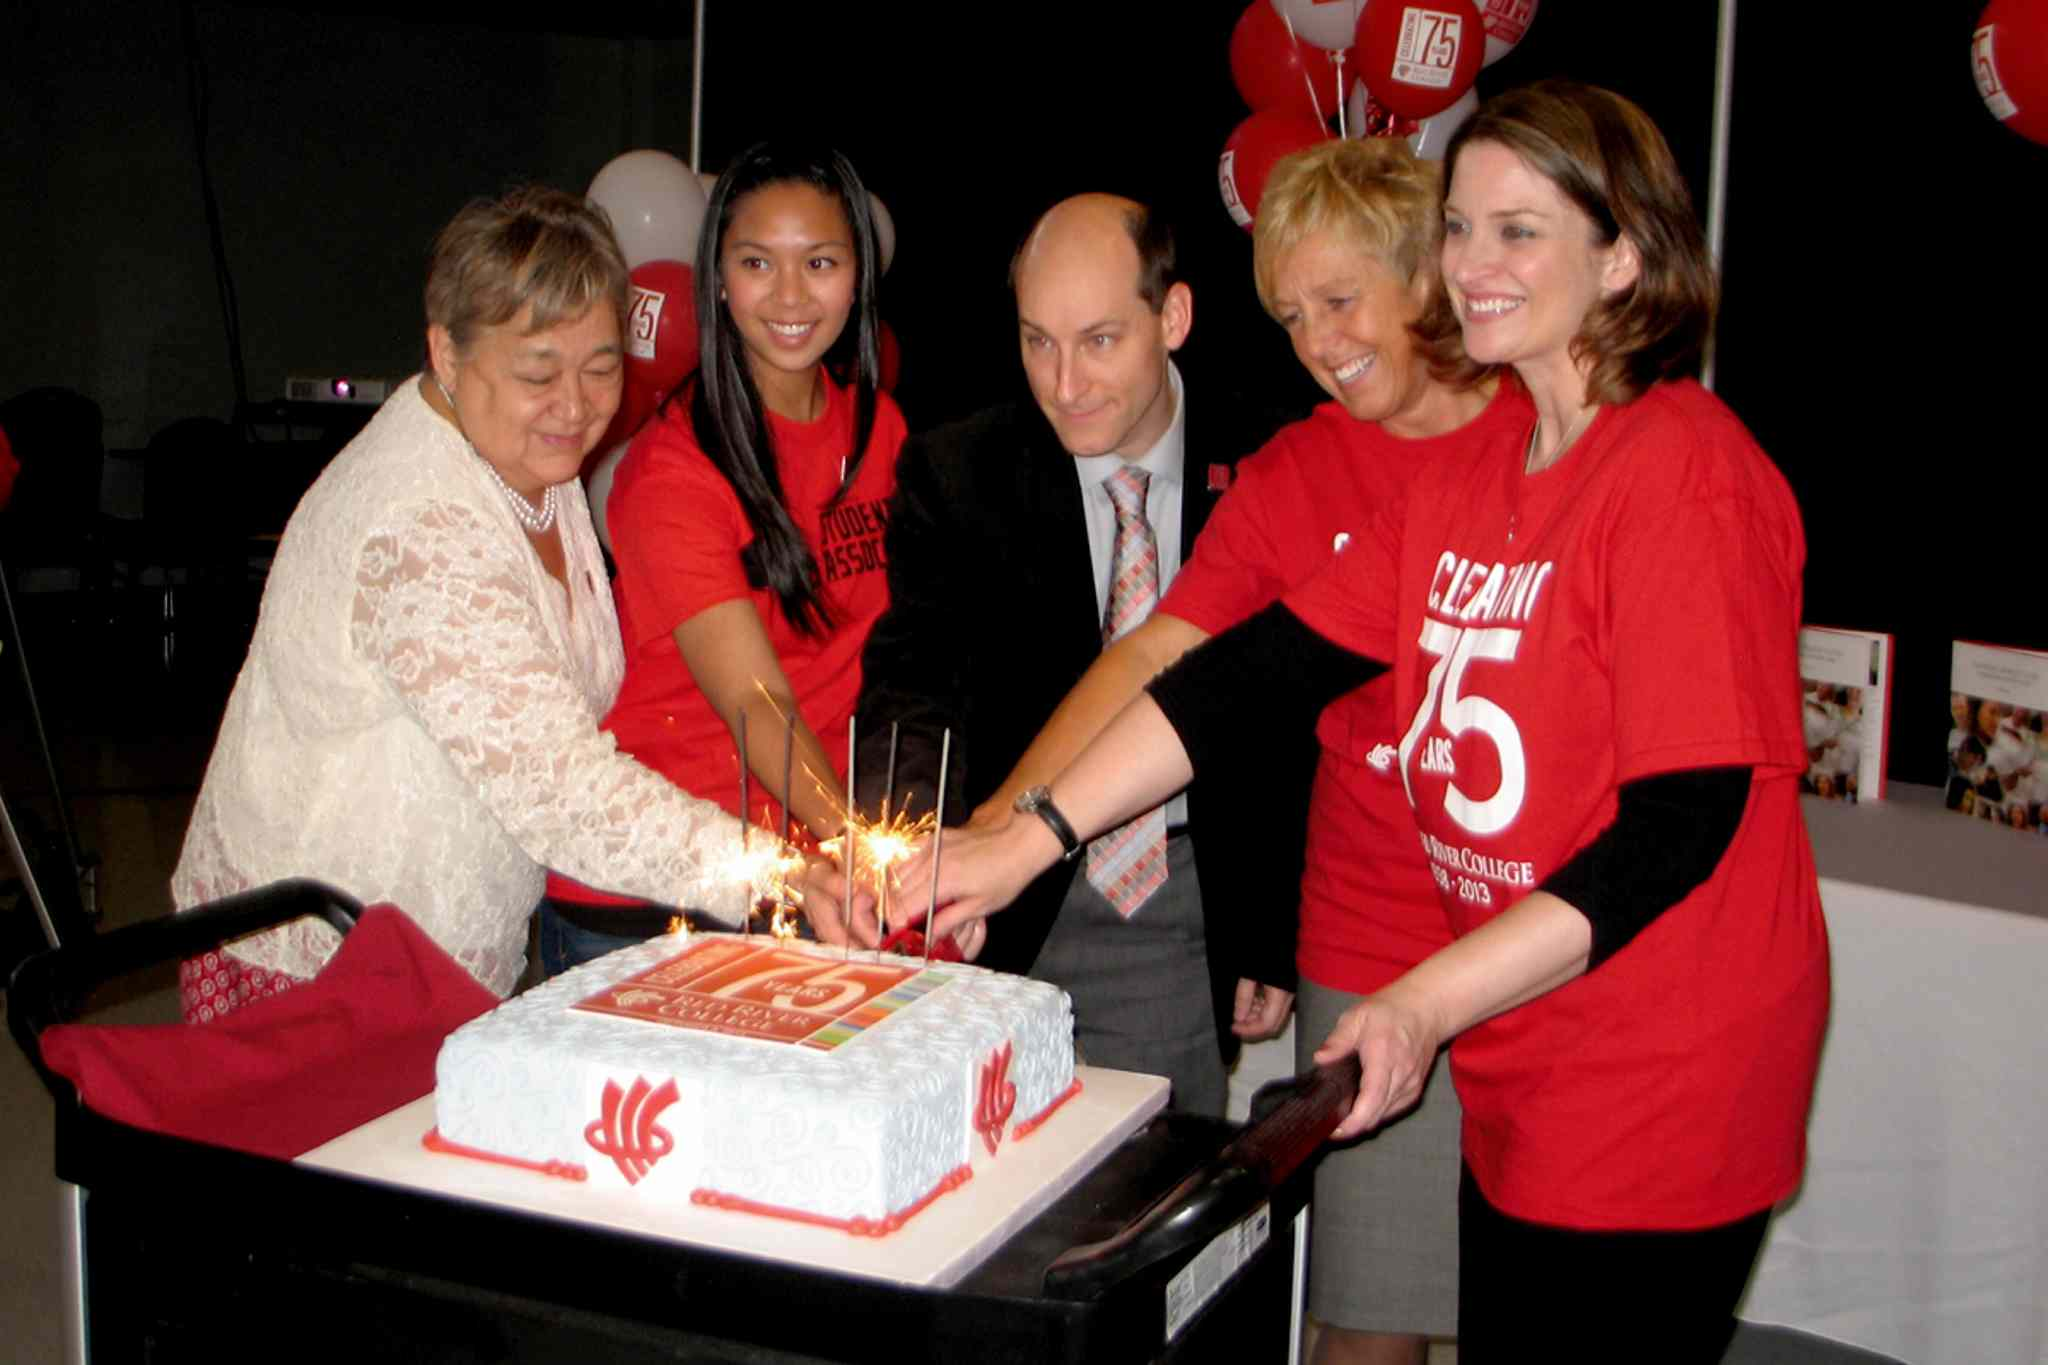 From left to right: RRC Elder-in-Residence Levinia Brown, RRCSA president Jocelle Cuvos, chair of RRC's board of governors Richard Lennon, RRC president and CEO Stephanie Forsyth and Minister for Advanced Education and Literacy Erin Selby cut RRC's 75th anniversary cake.